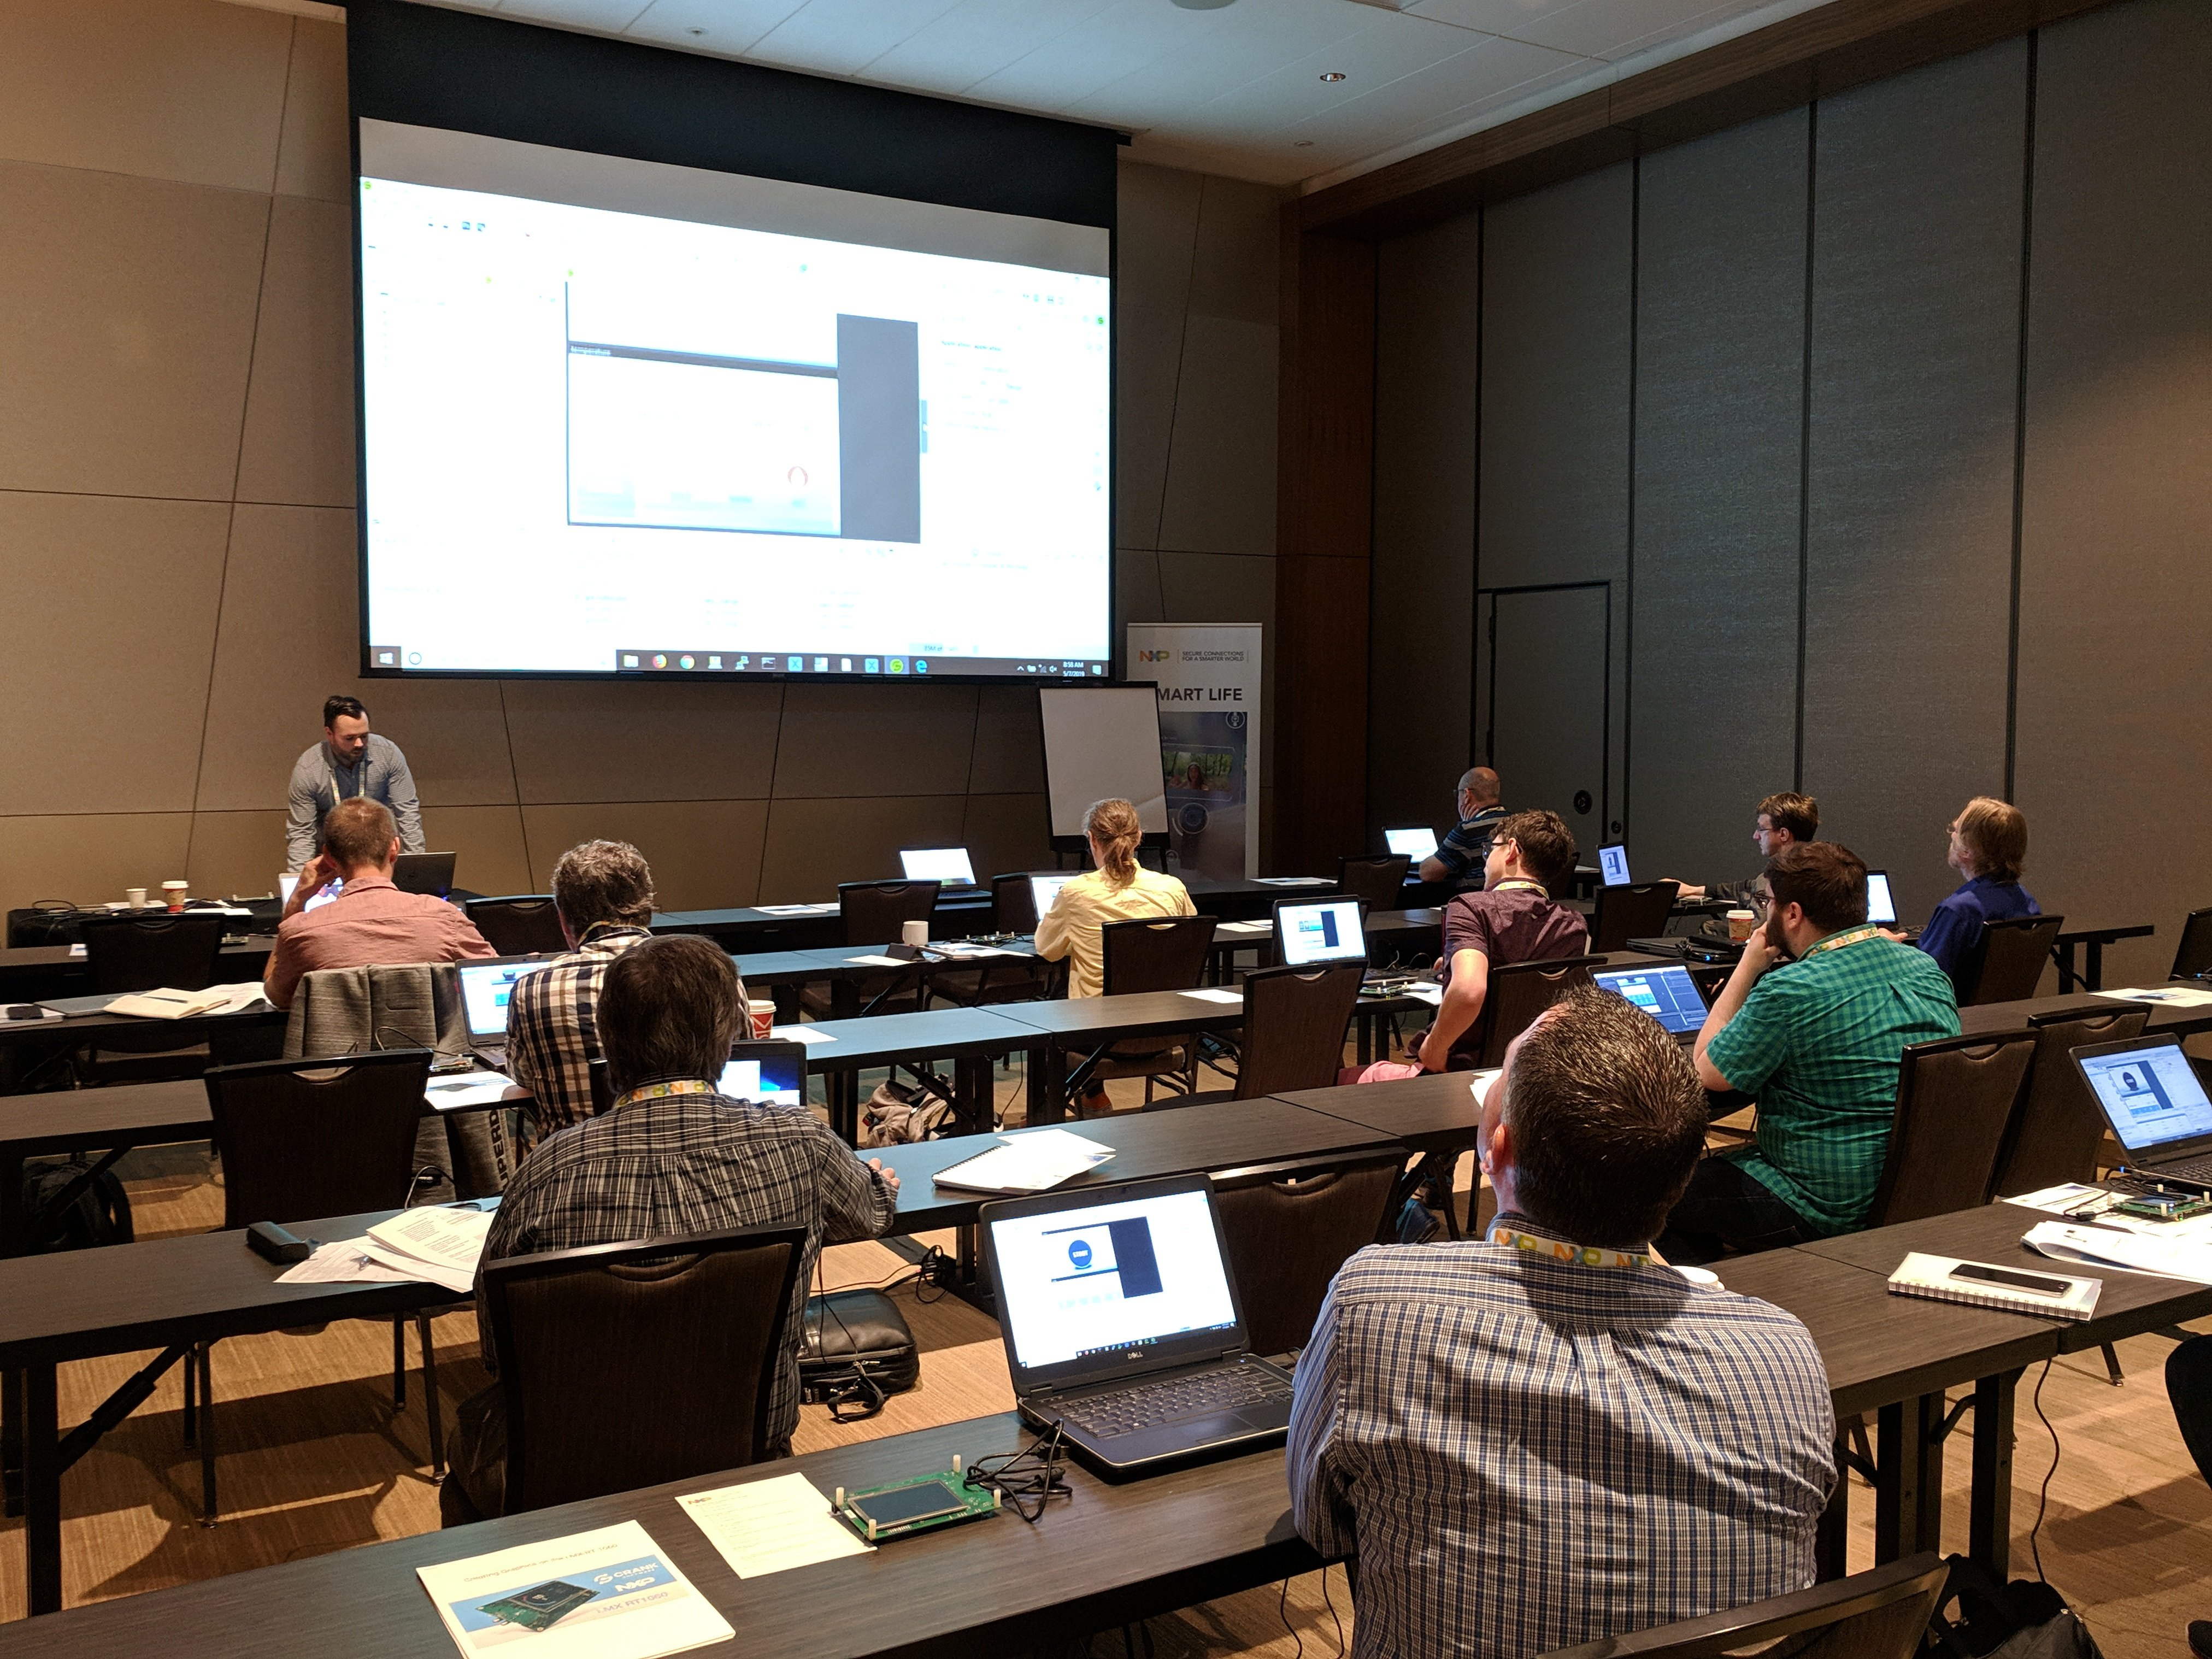 Above: Nik Schultz hosting a workshop for NXP customers on using Storyboard Lite for the RT 1060